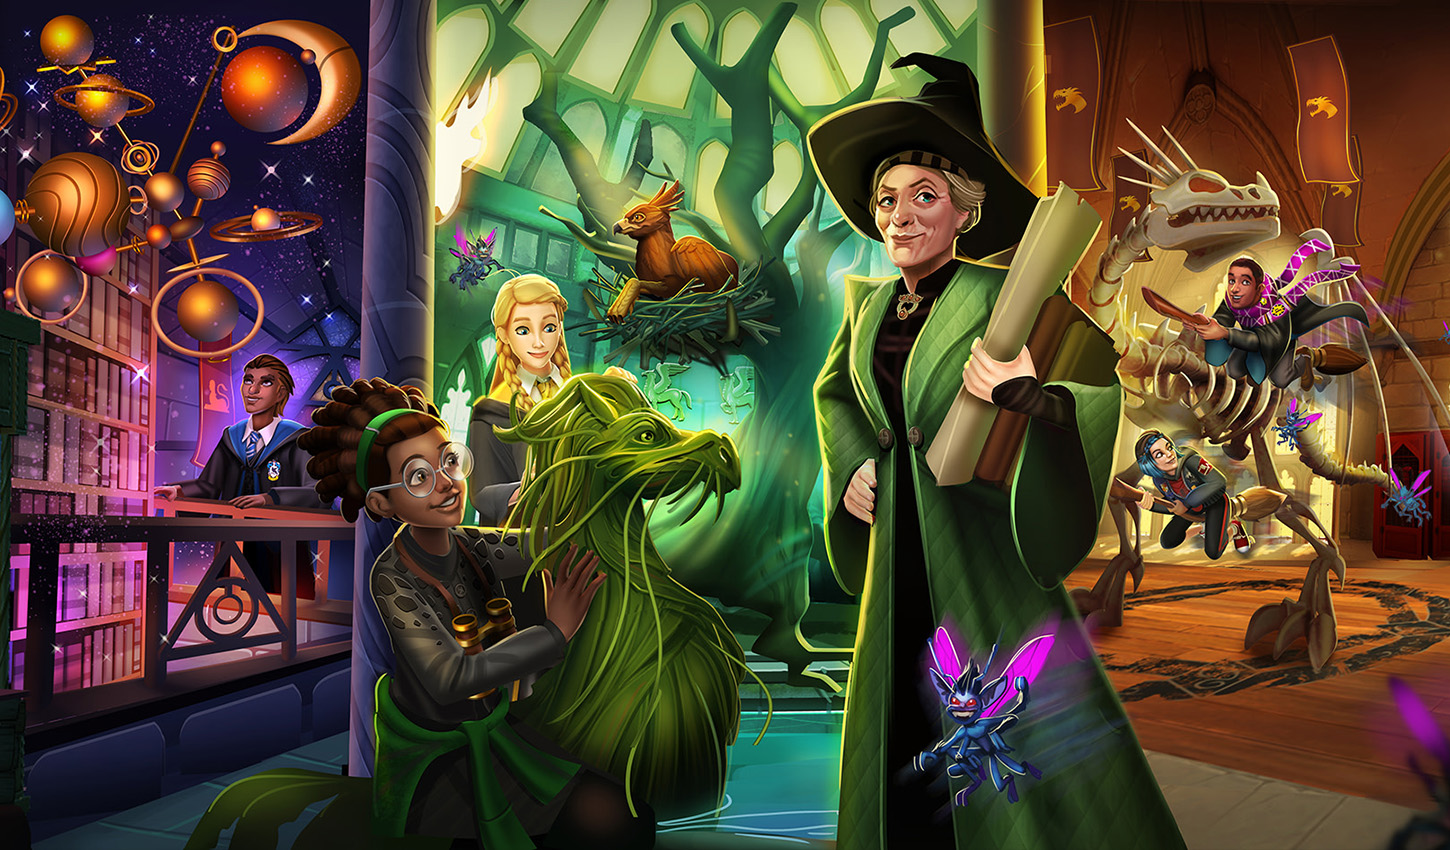 Hogwarts Mystery Increases Player Spending By $ 300 Million In Three Years